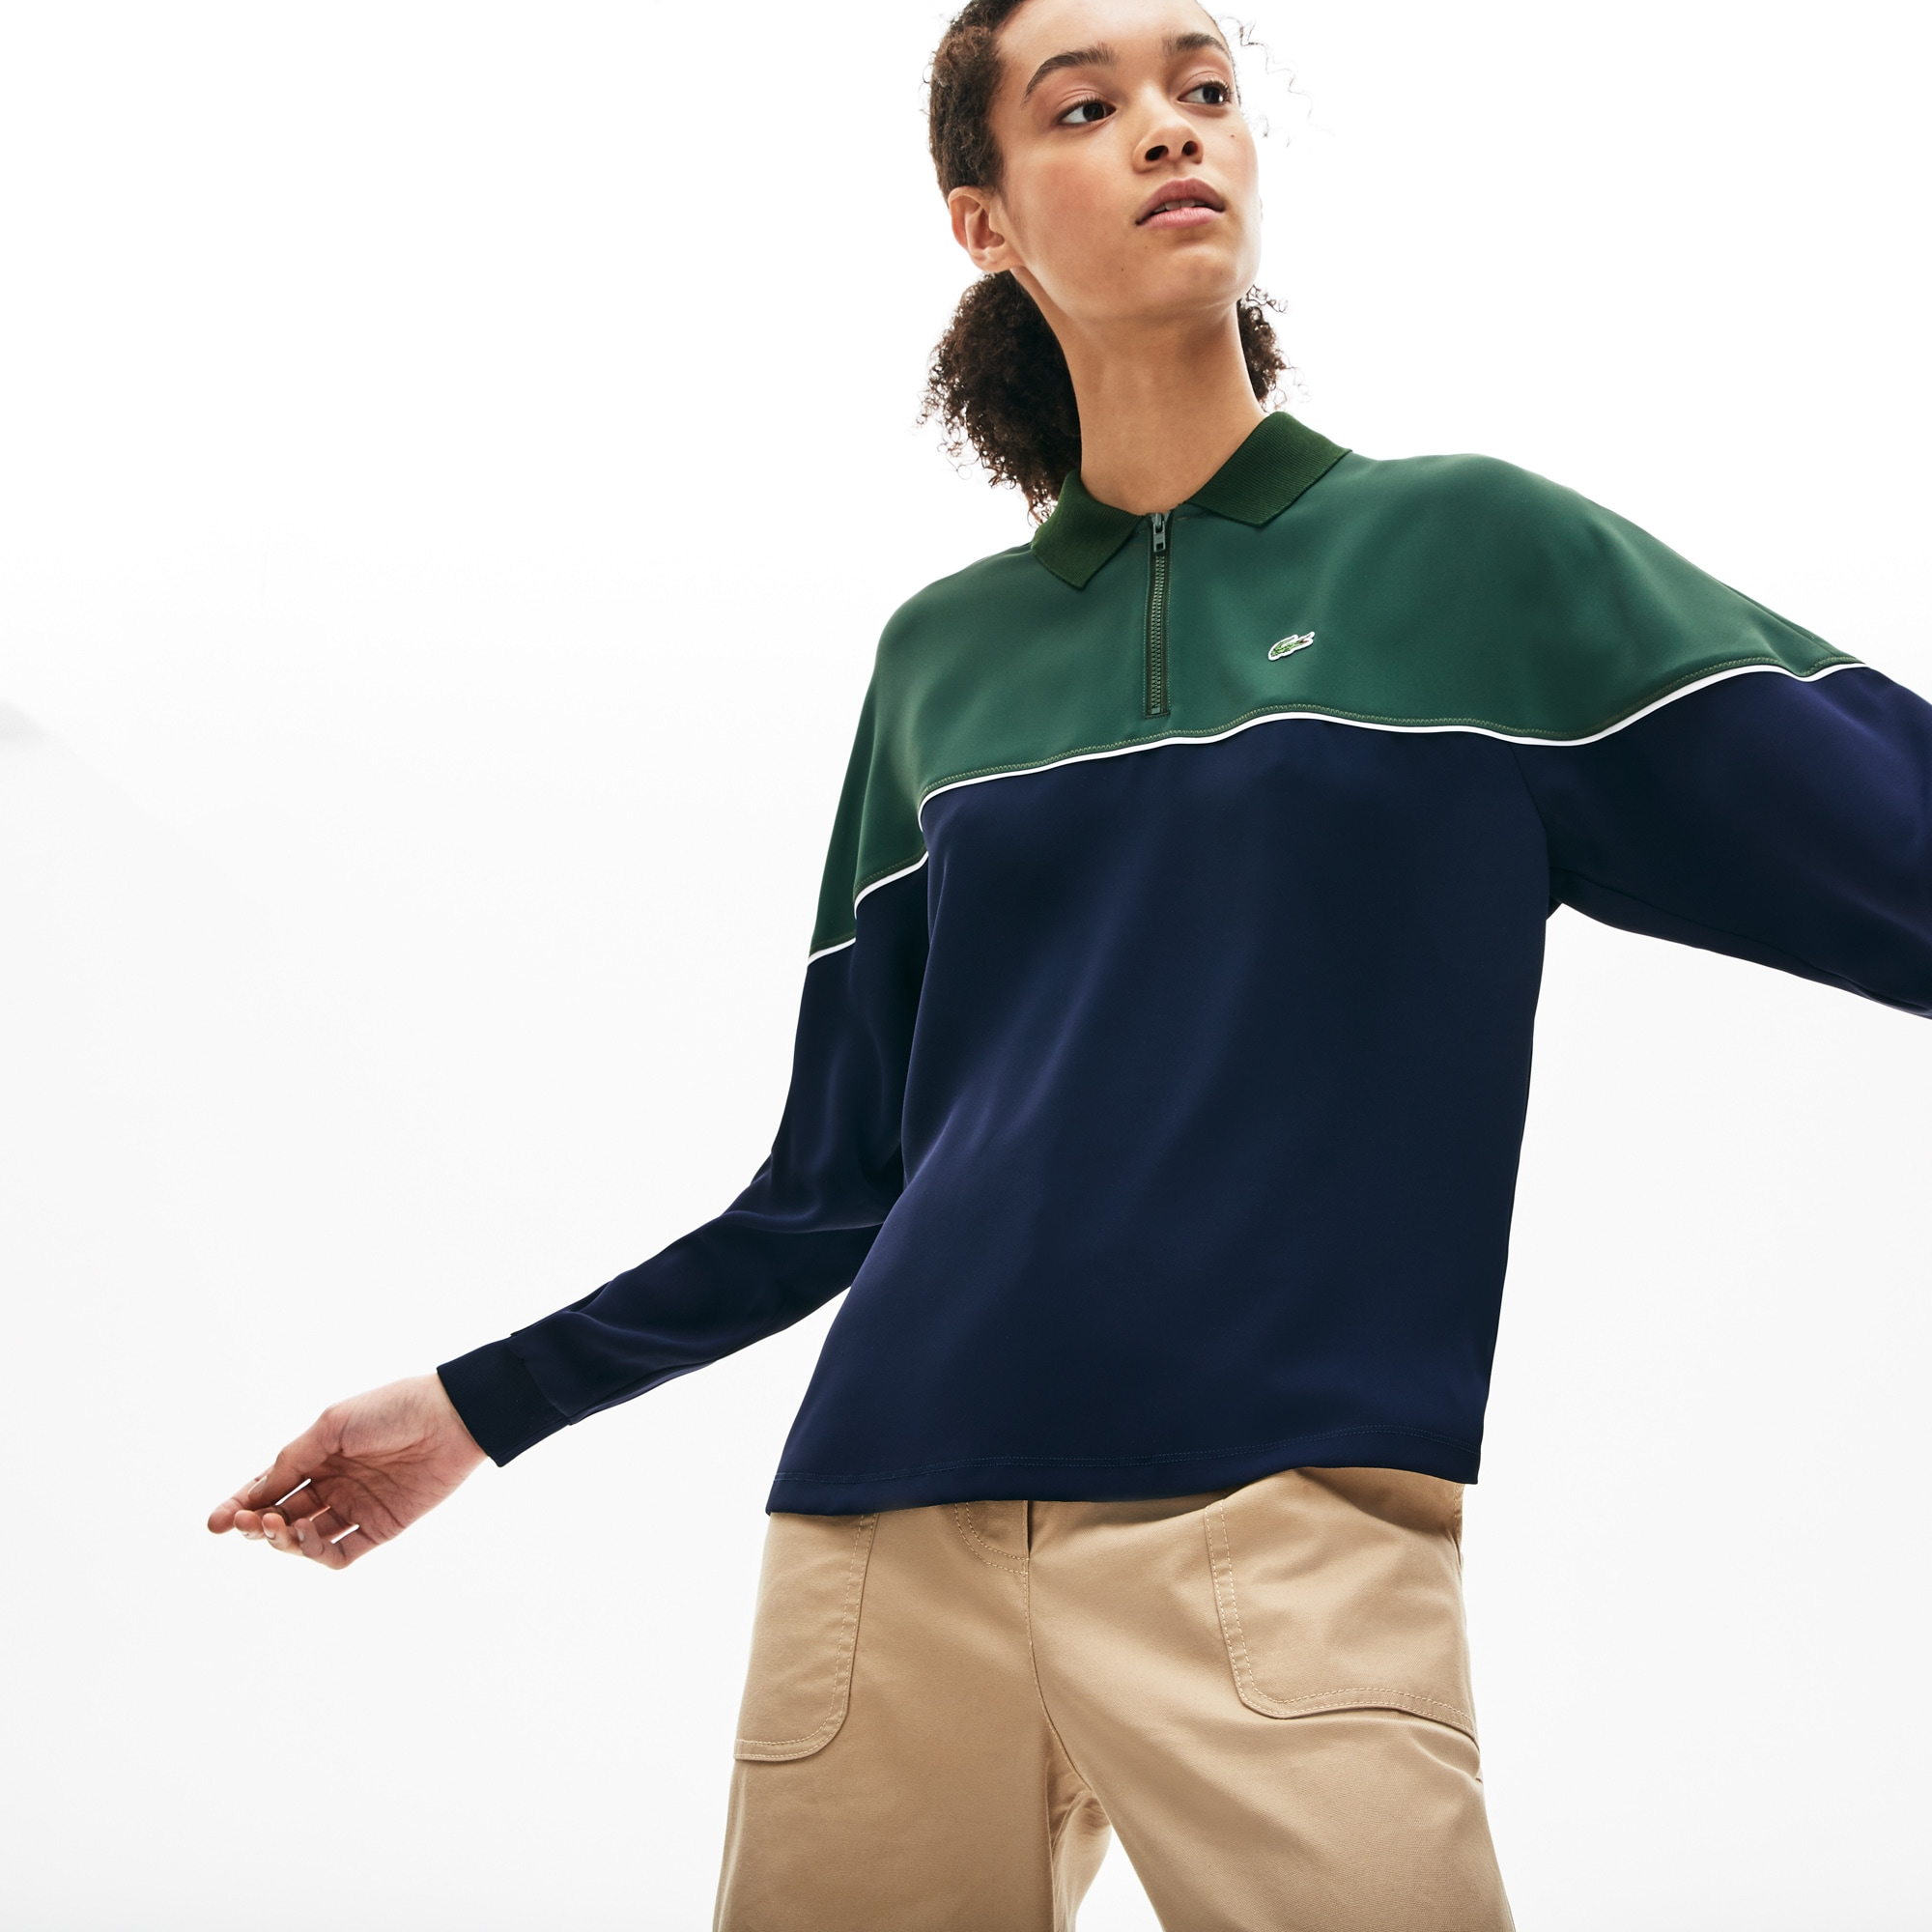 Women's Lacoste Relaxed Fit Zip Neck Colourblock Polo Shirt